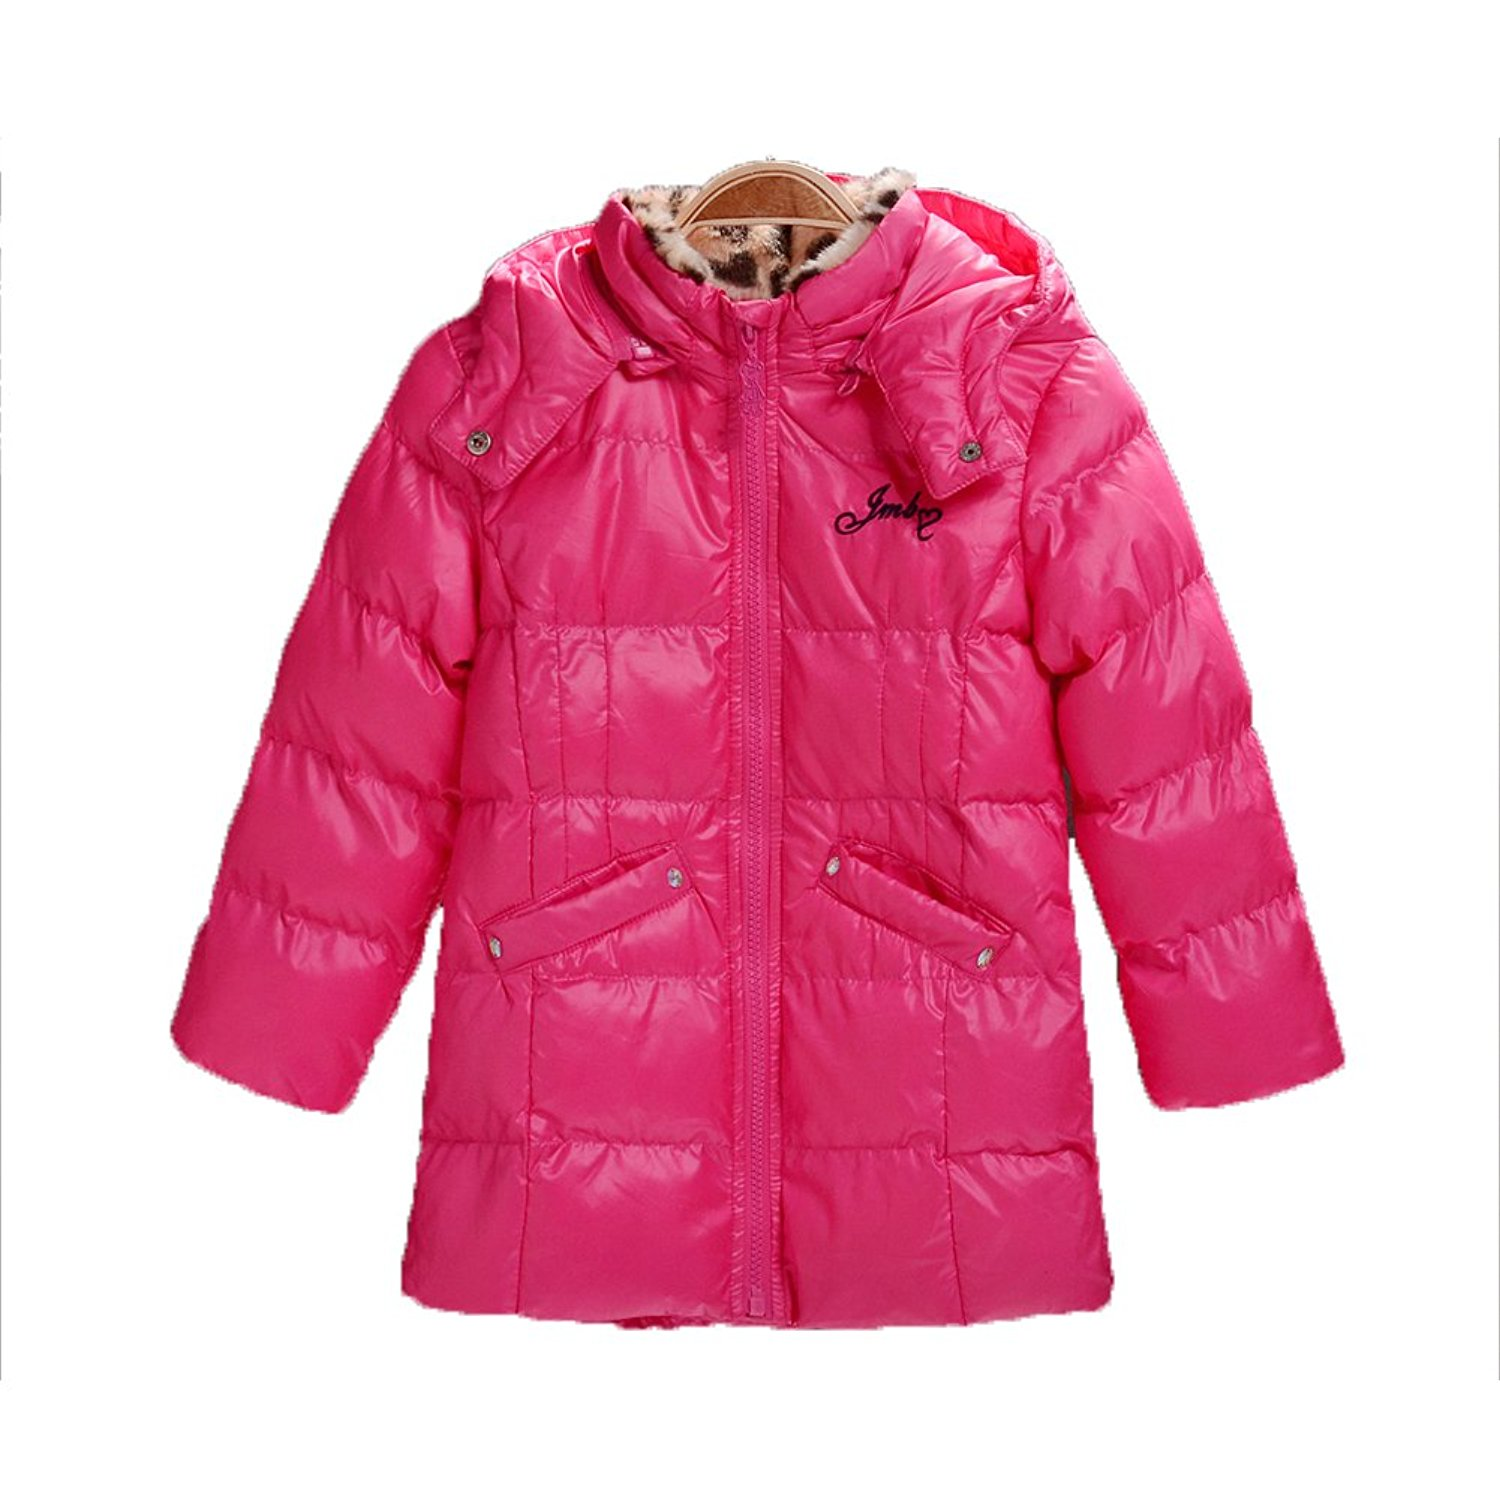 071996af1 Get Quotations · KID1234 Girls Winter Jacket - Baby Girl Winter Jacket, Toddler Girls Jacket,Girls Puffer